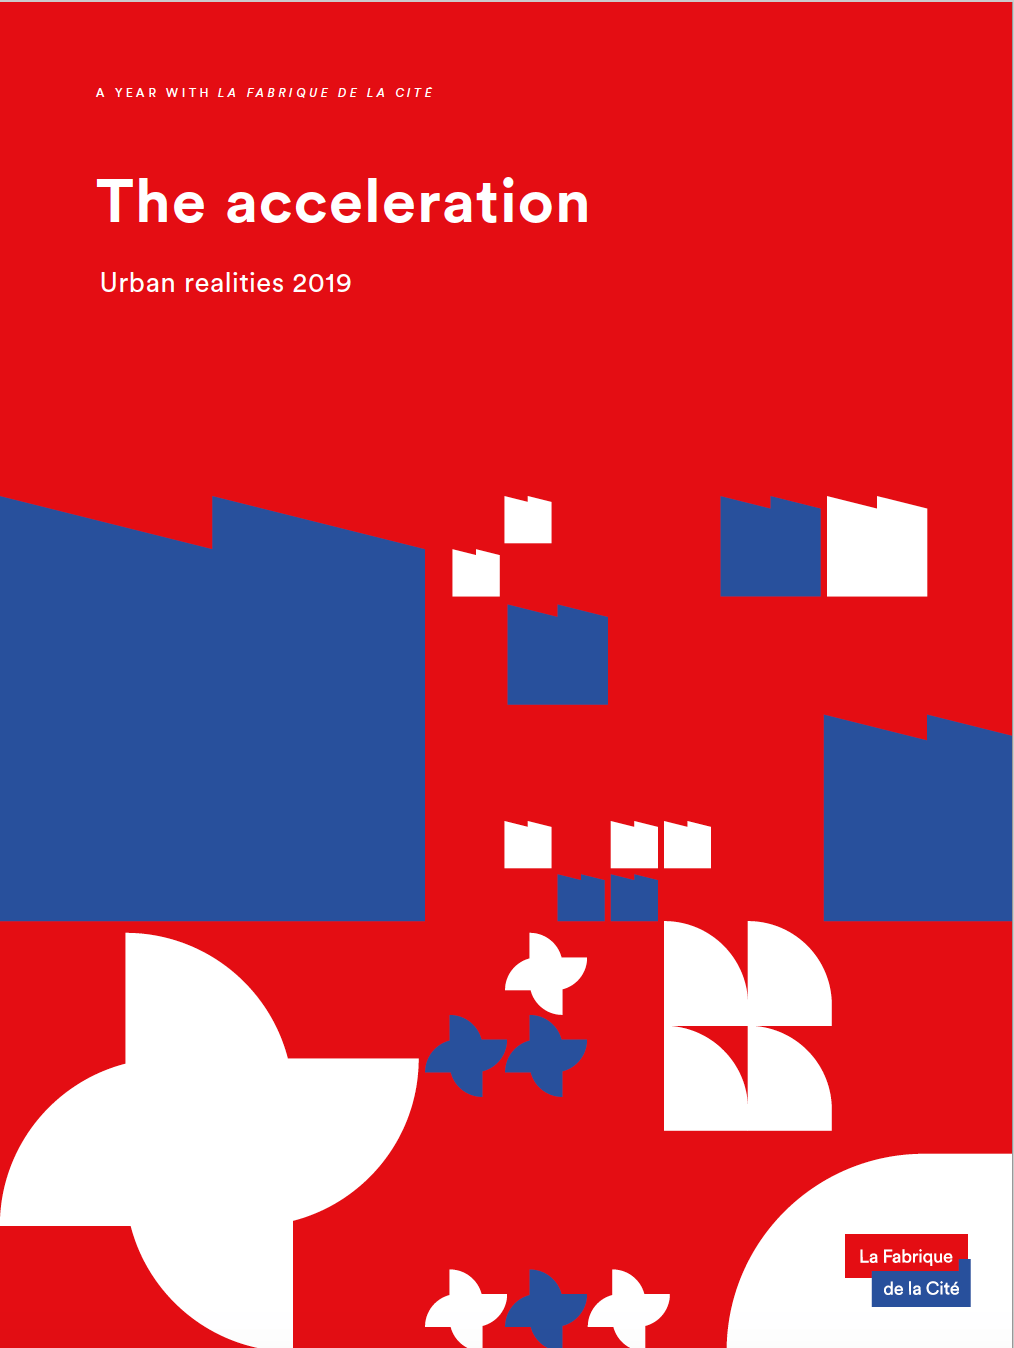 The acceleration - Urban realities 2019